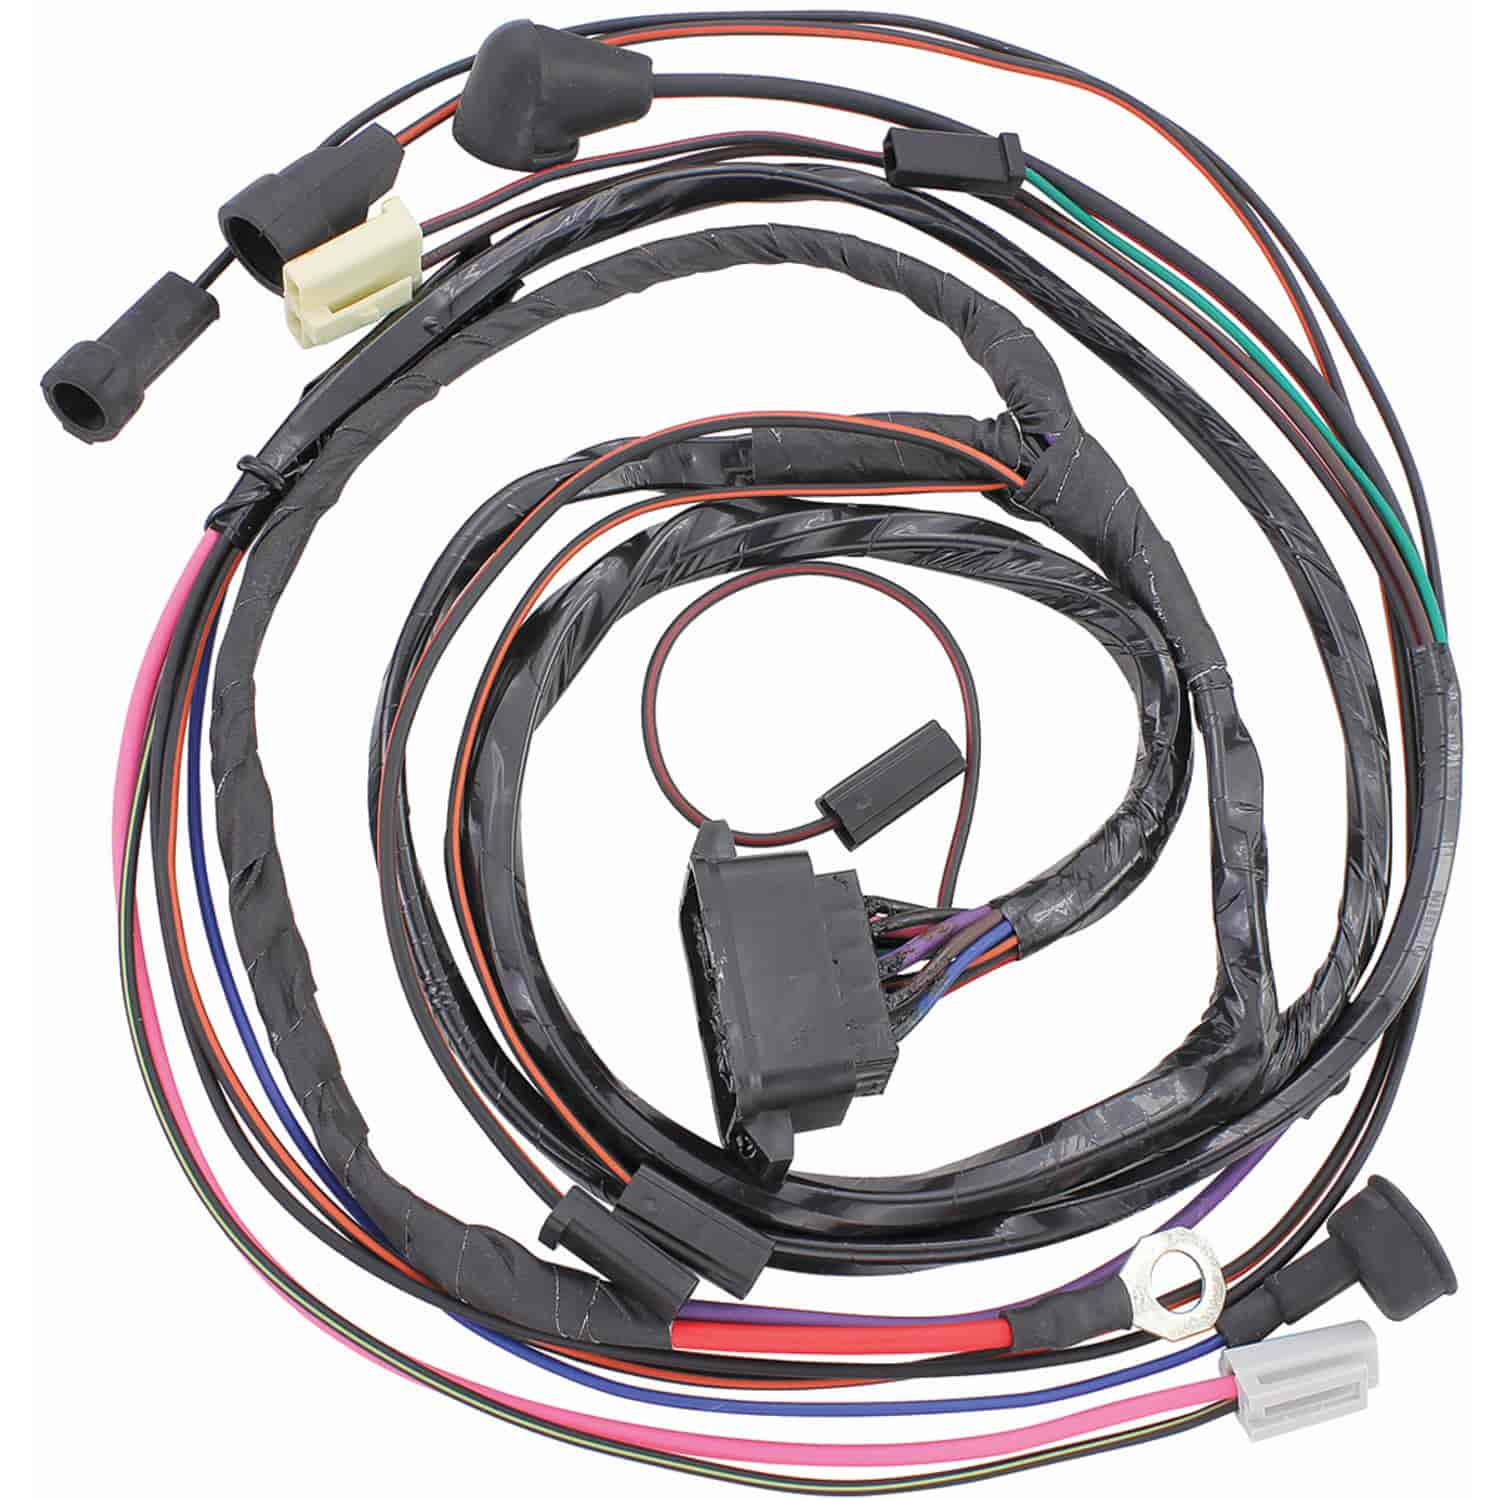 restoparts 40255: wiring harness engine 1965 gto/lemans ... 1965 mustang wiring harness 1965 lemans wiring harness #11